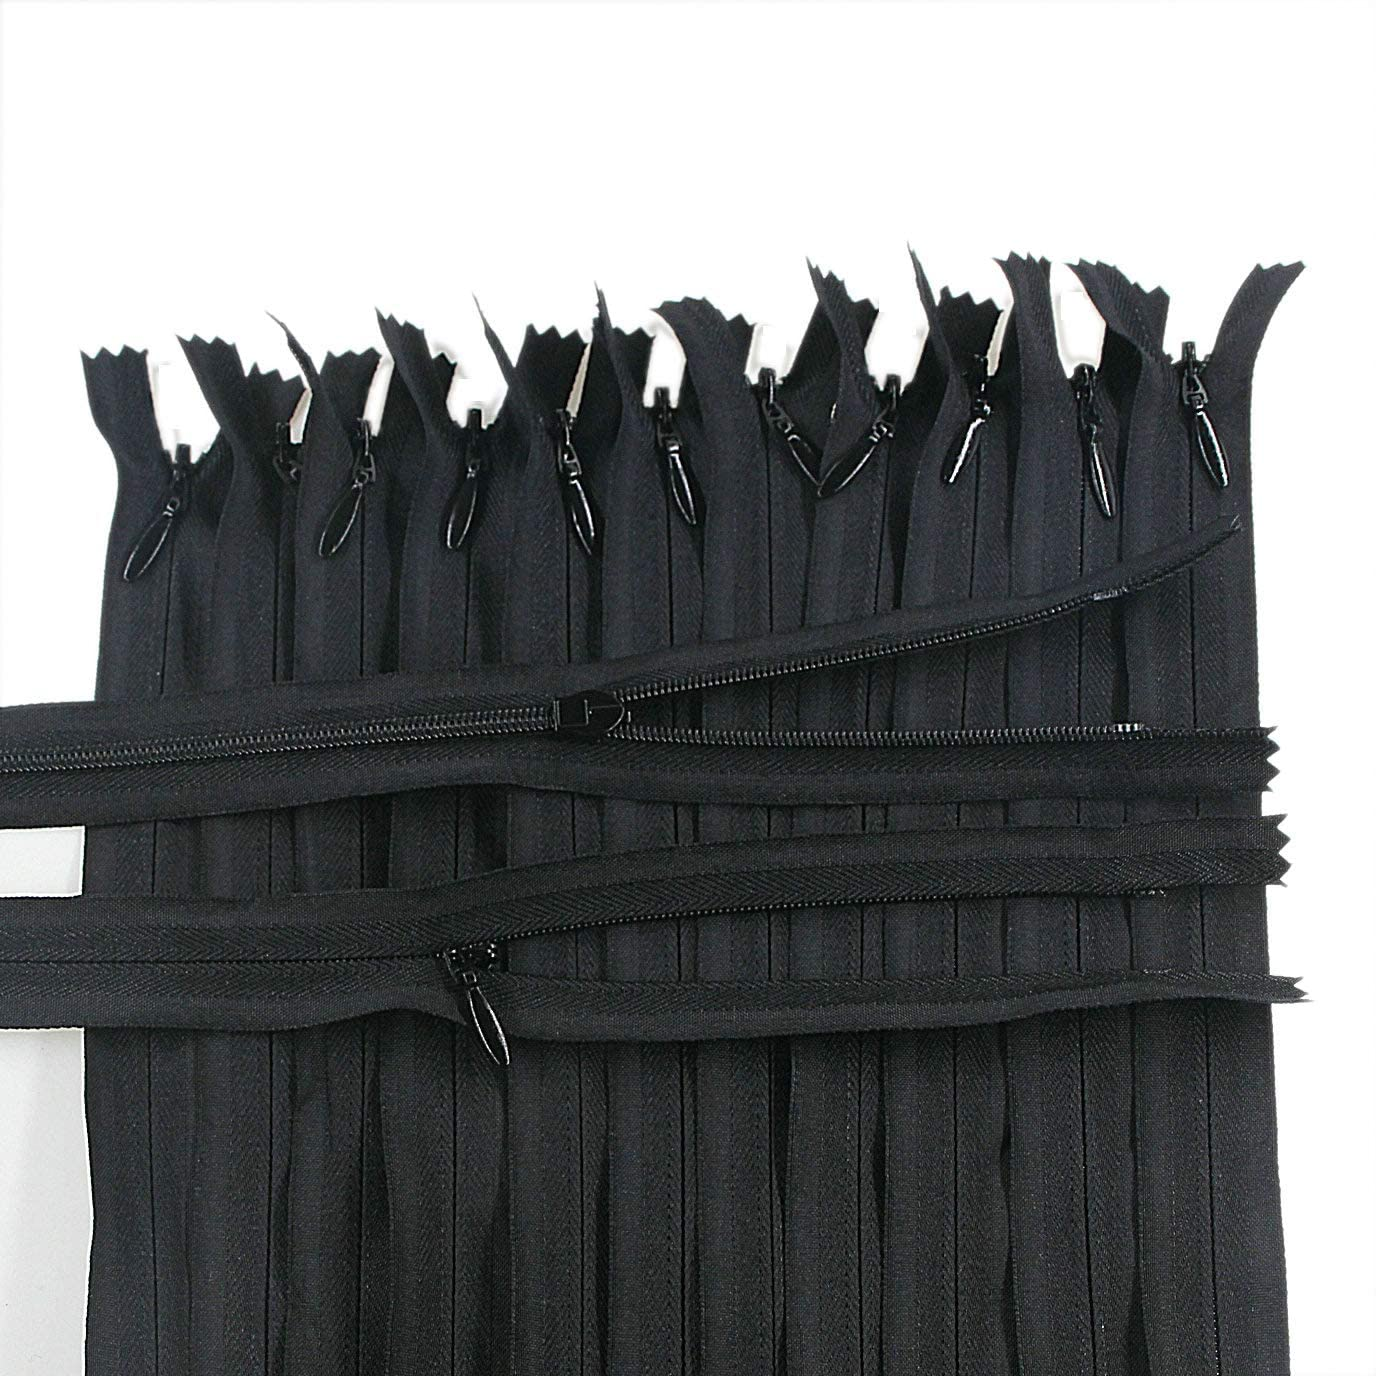 Leekayer 9 inch,Black 30PCS Invisible Nylon Coil Zipper,Clothing Zipper,DIY Sewing Tools for Craft Special